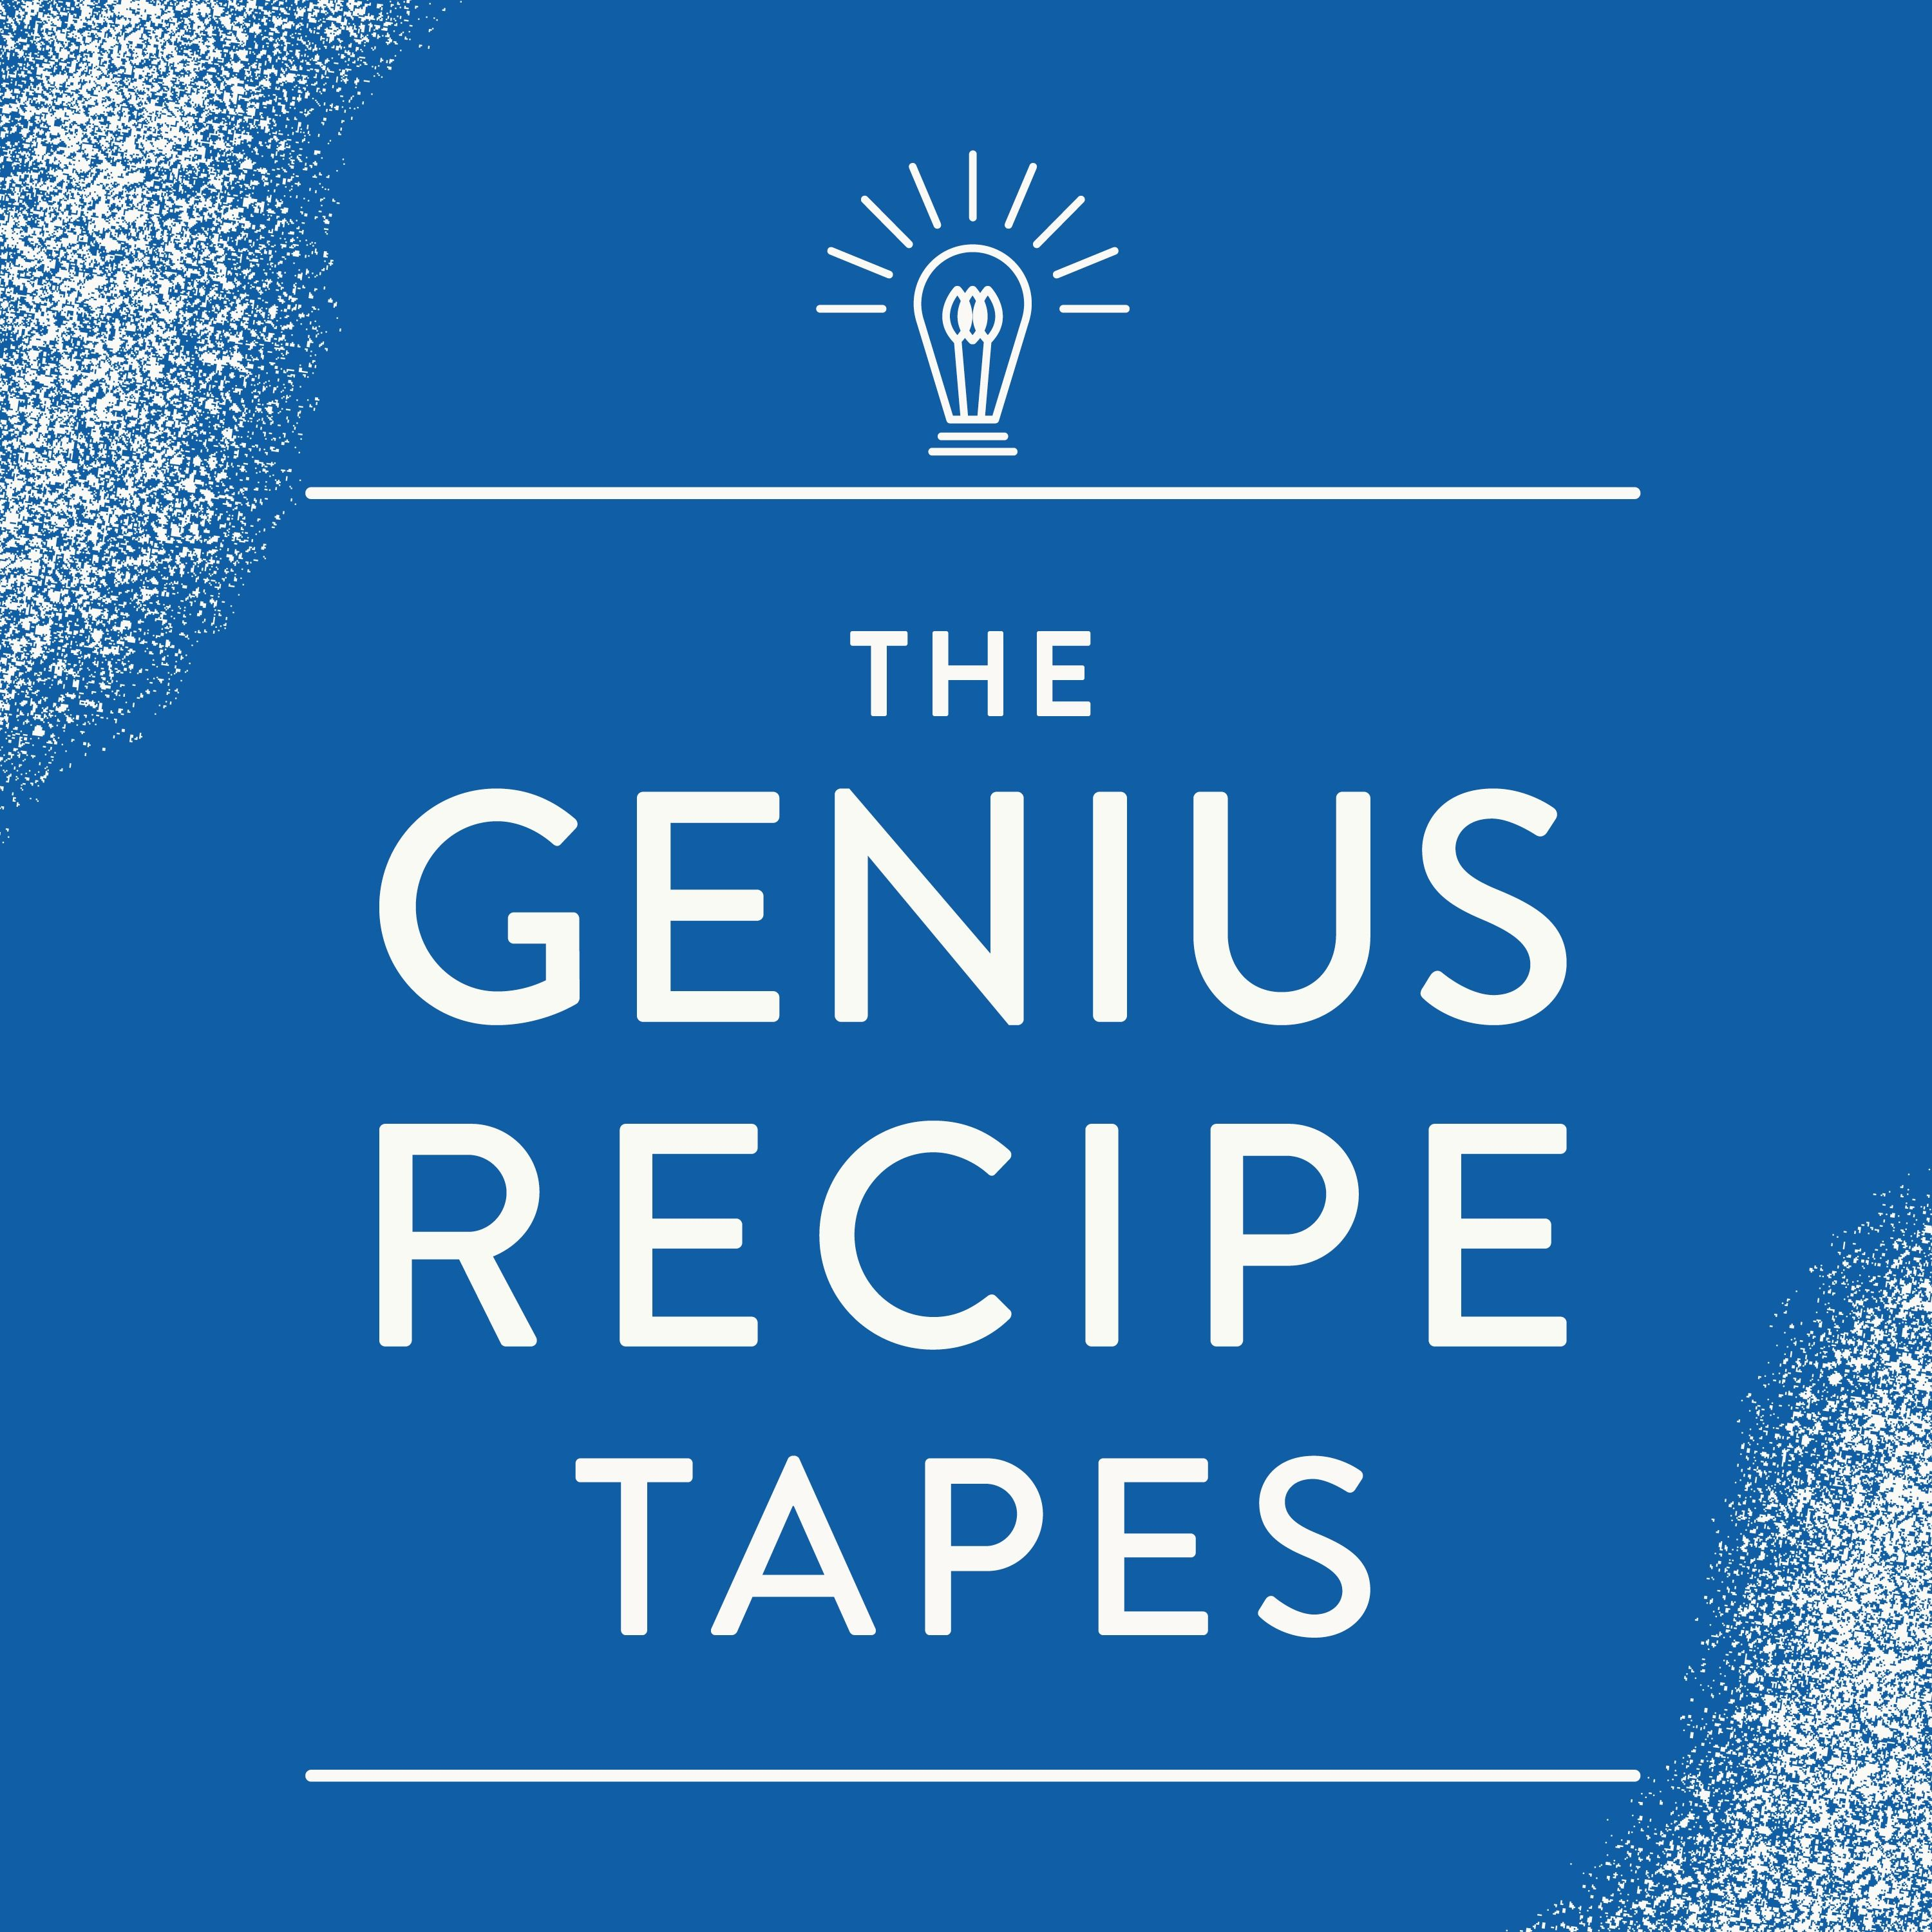 The Genius Recipe Tapes: Sohla El-Waylly wants you to put fun dip in your pocket